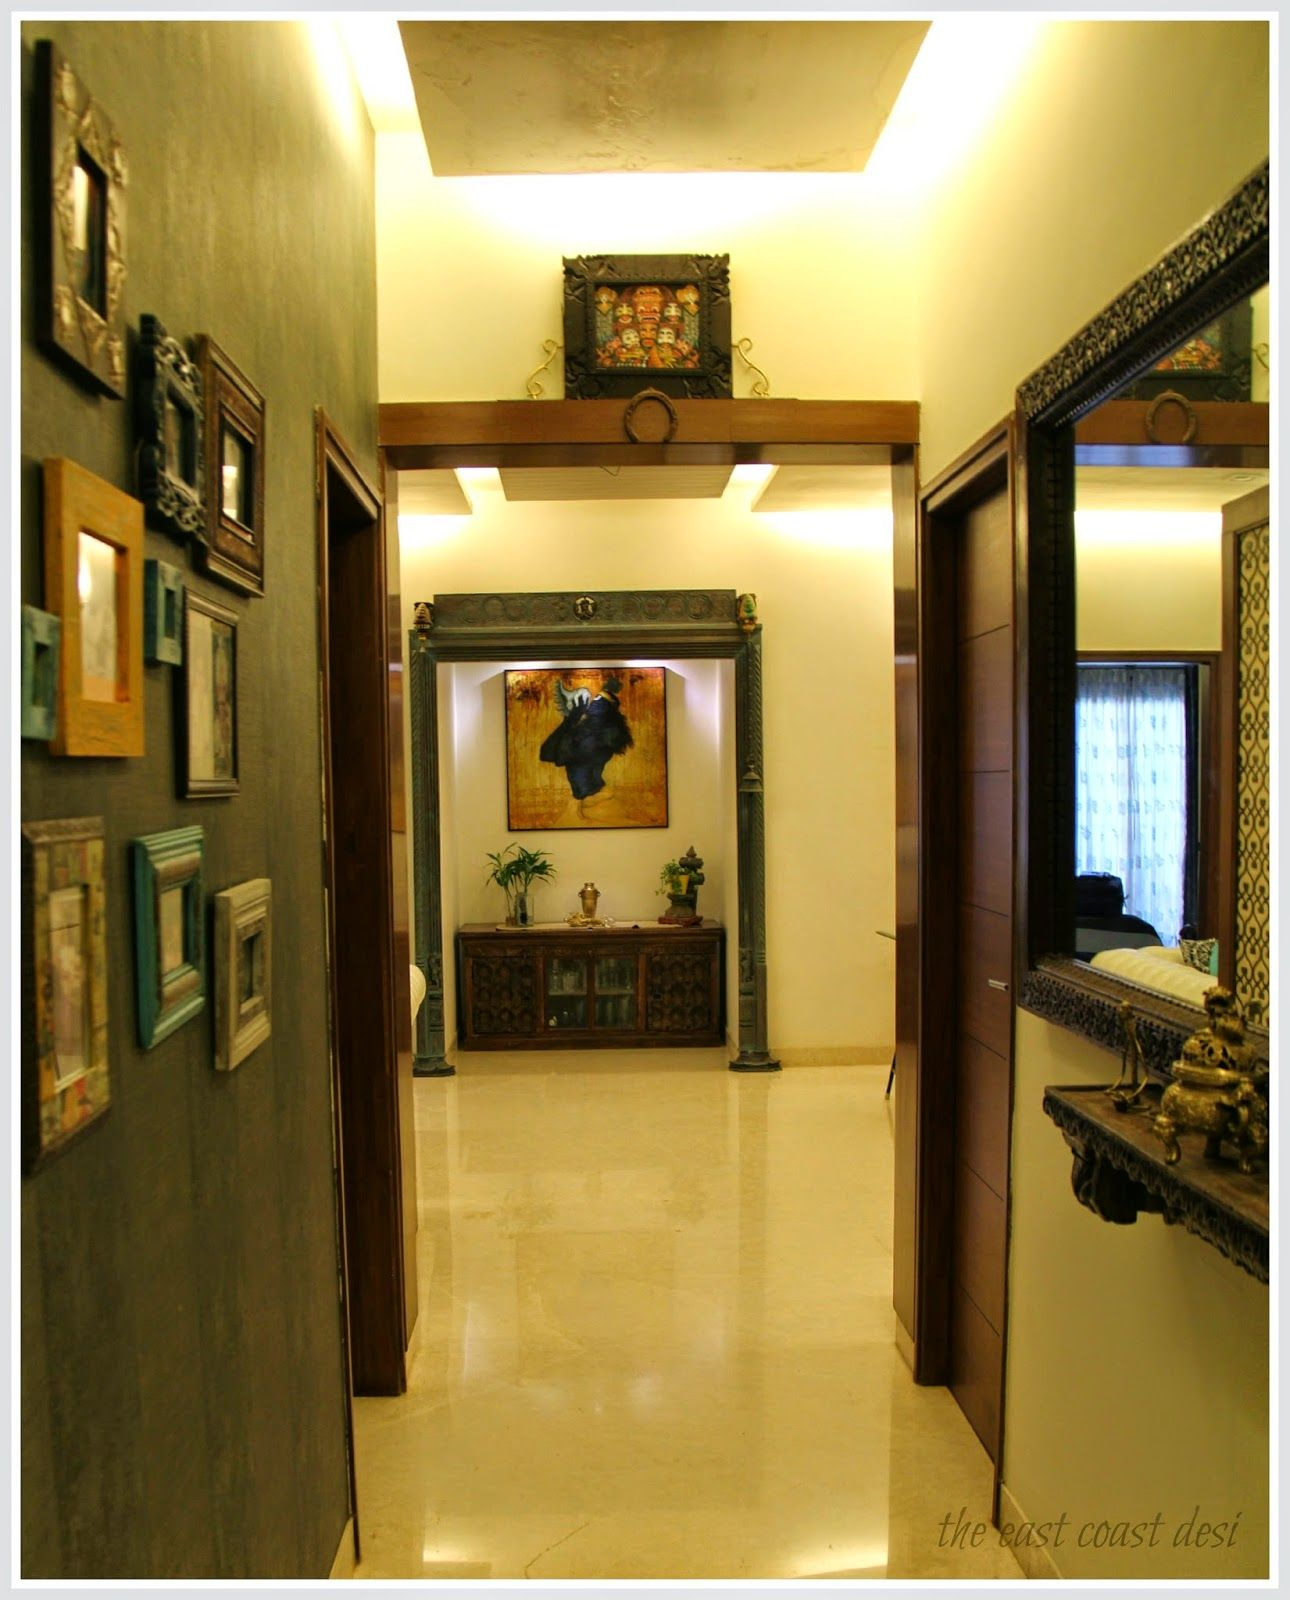 Antique Indian décor elements, contemporary furniture and paintings ...